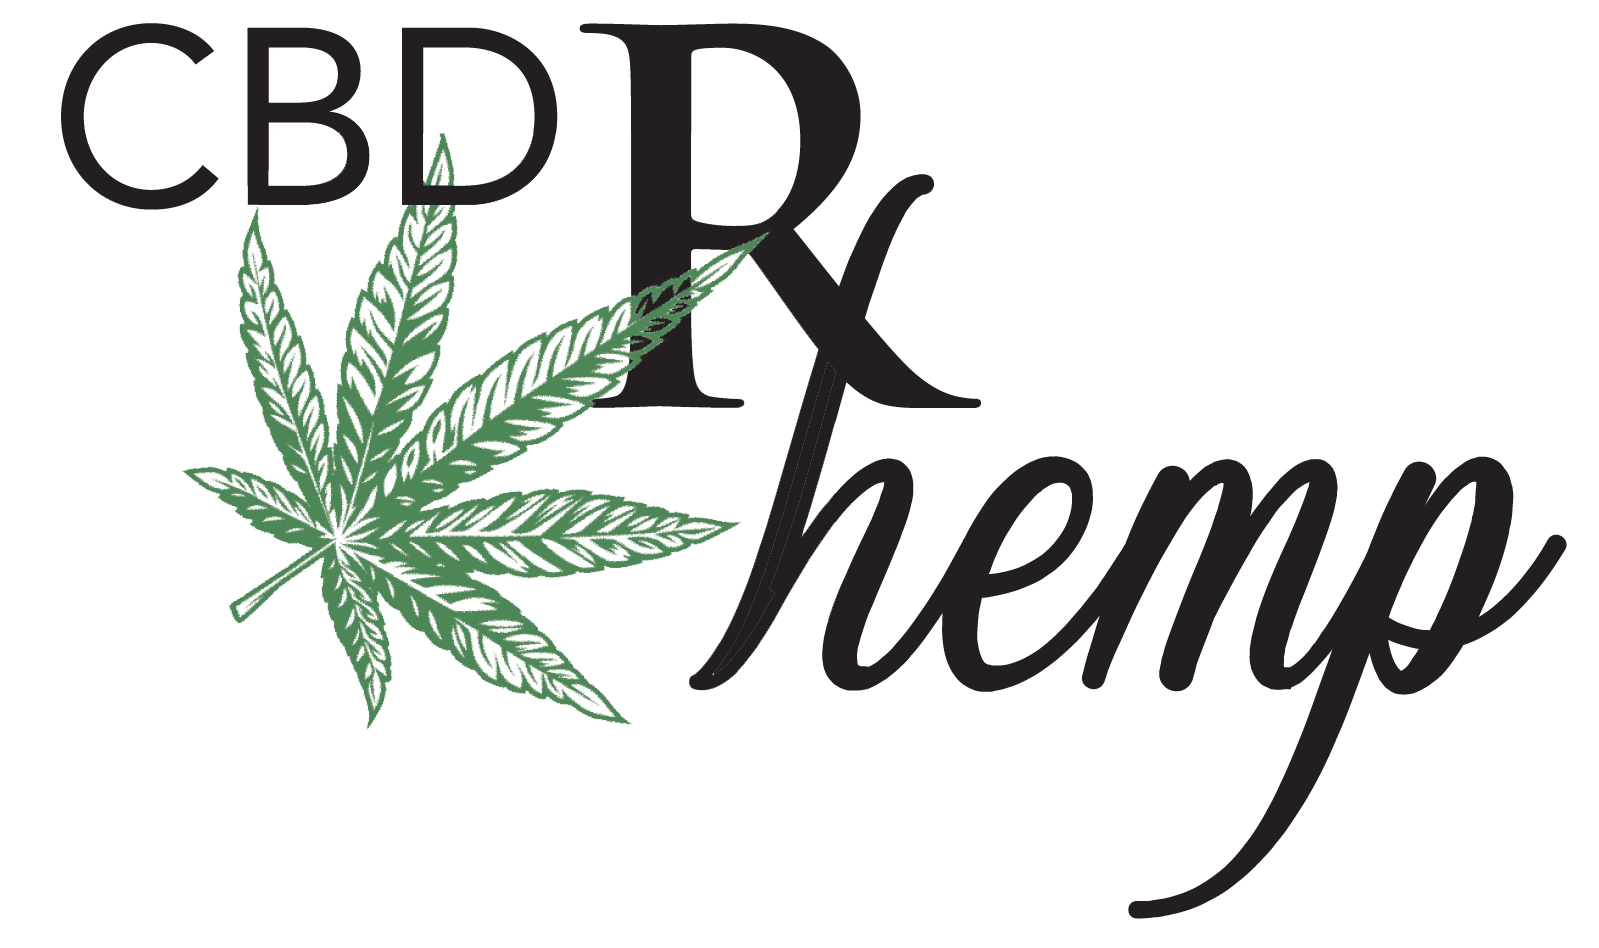 CBDR Hemp Co. On CBDResellers.com